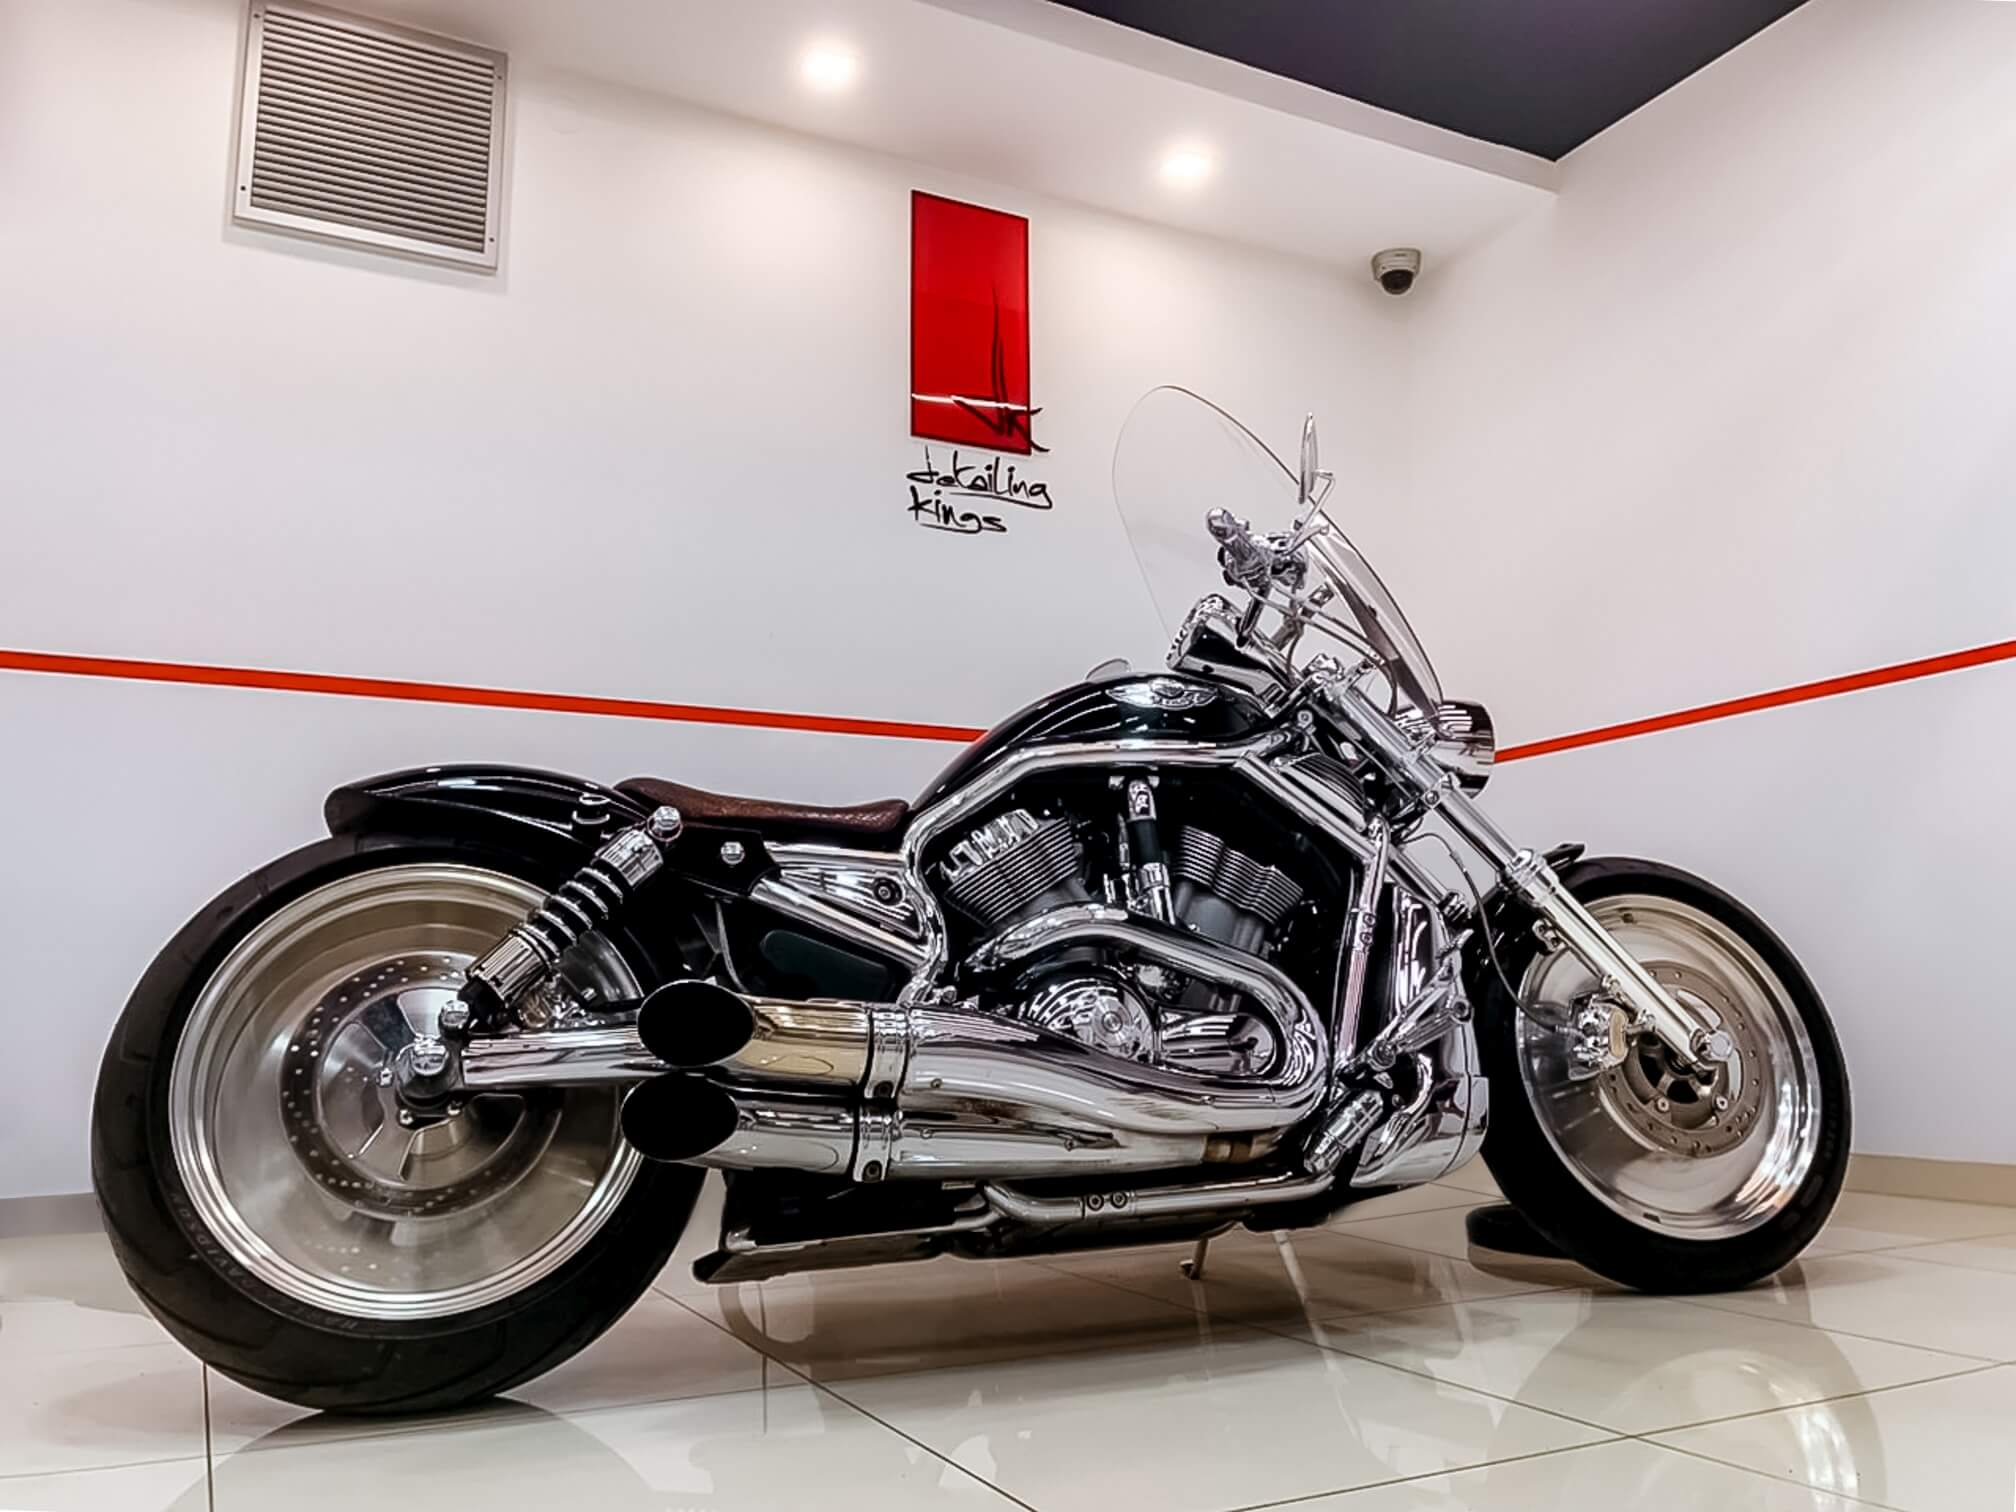 DK gallery photo 4 polished motorcycle